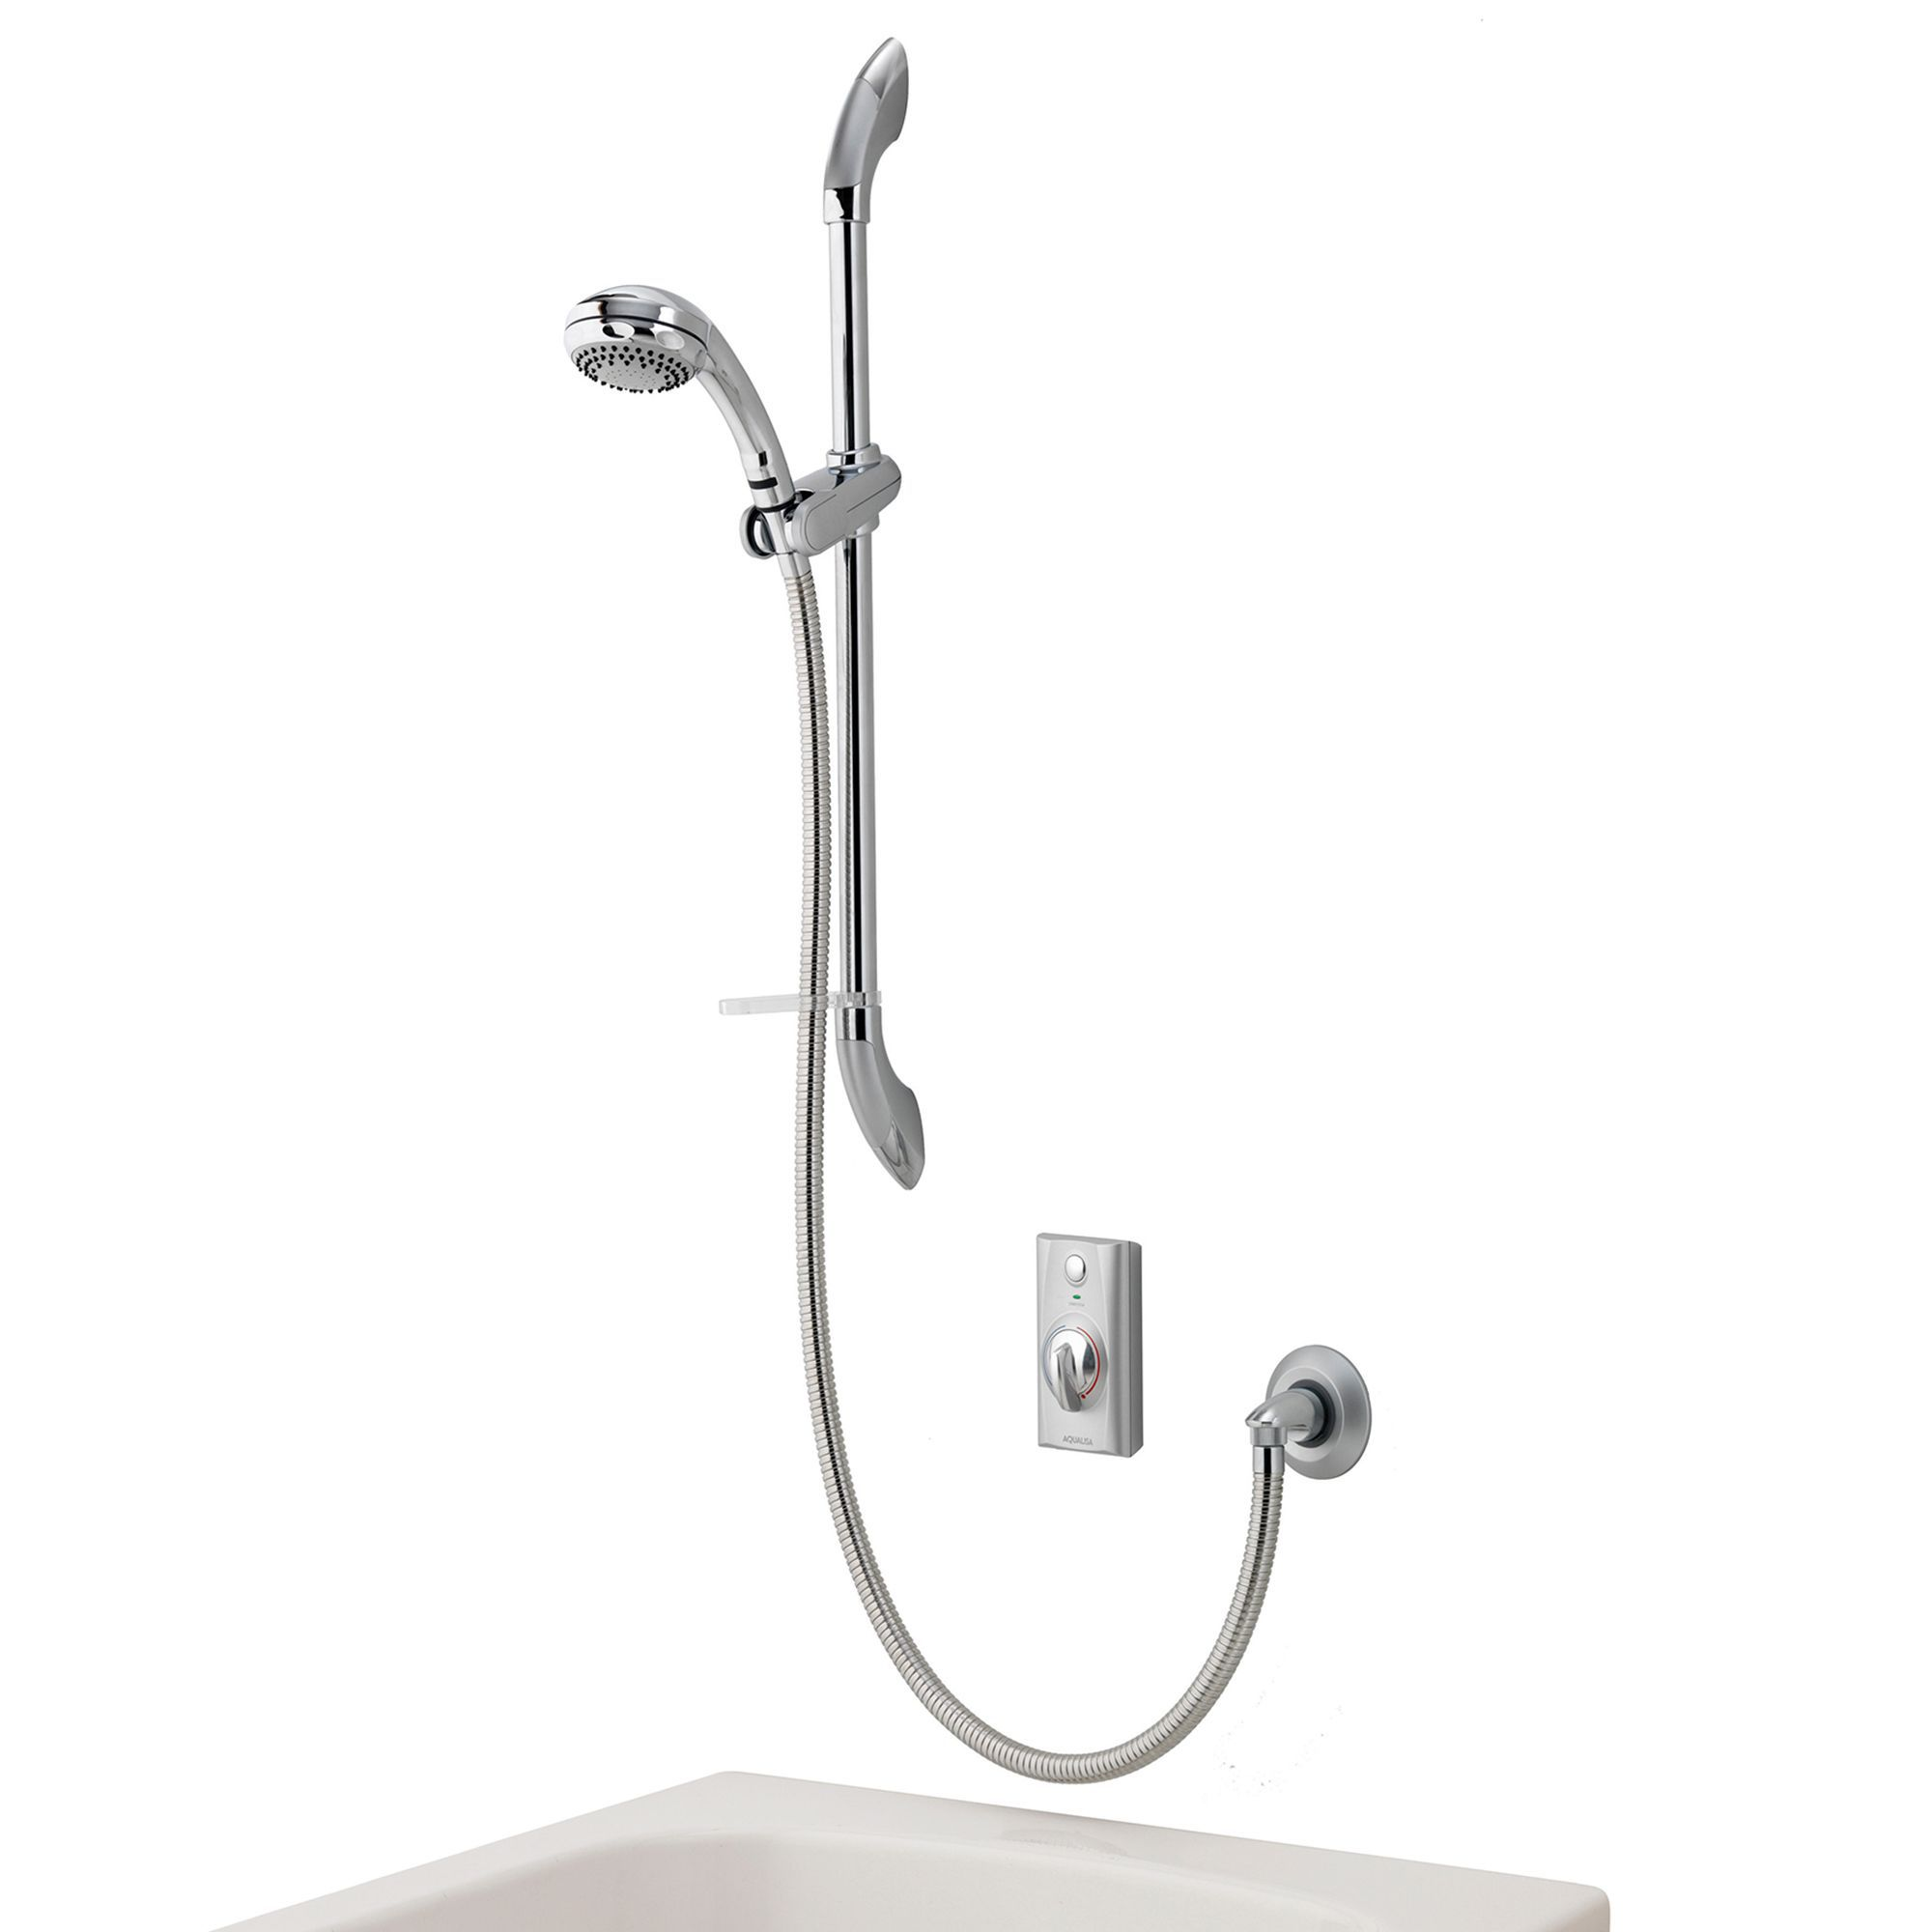 Aqualisa Visage Chrome effect Manual Digital shower